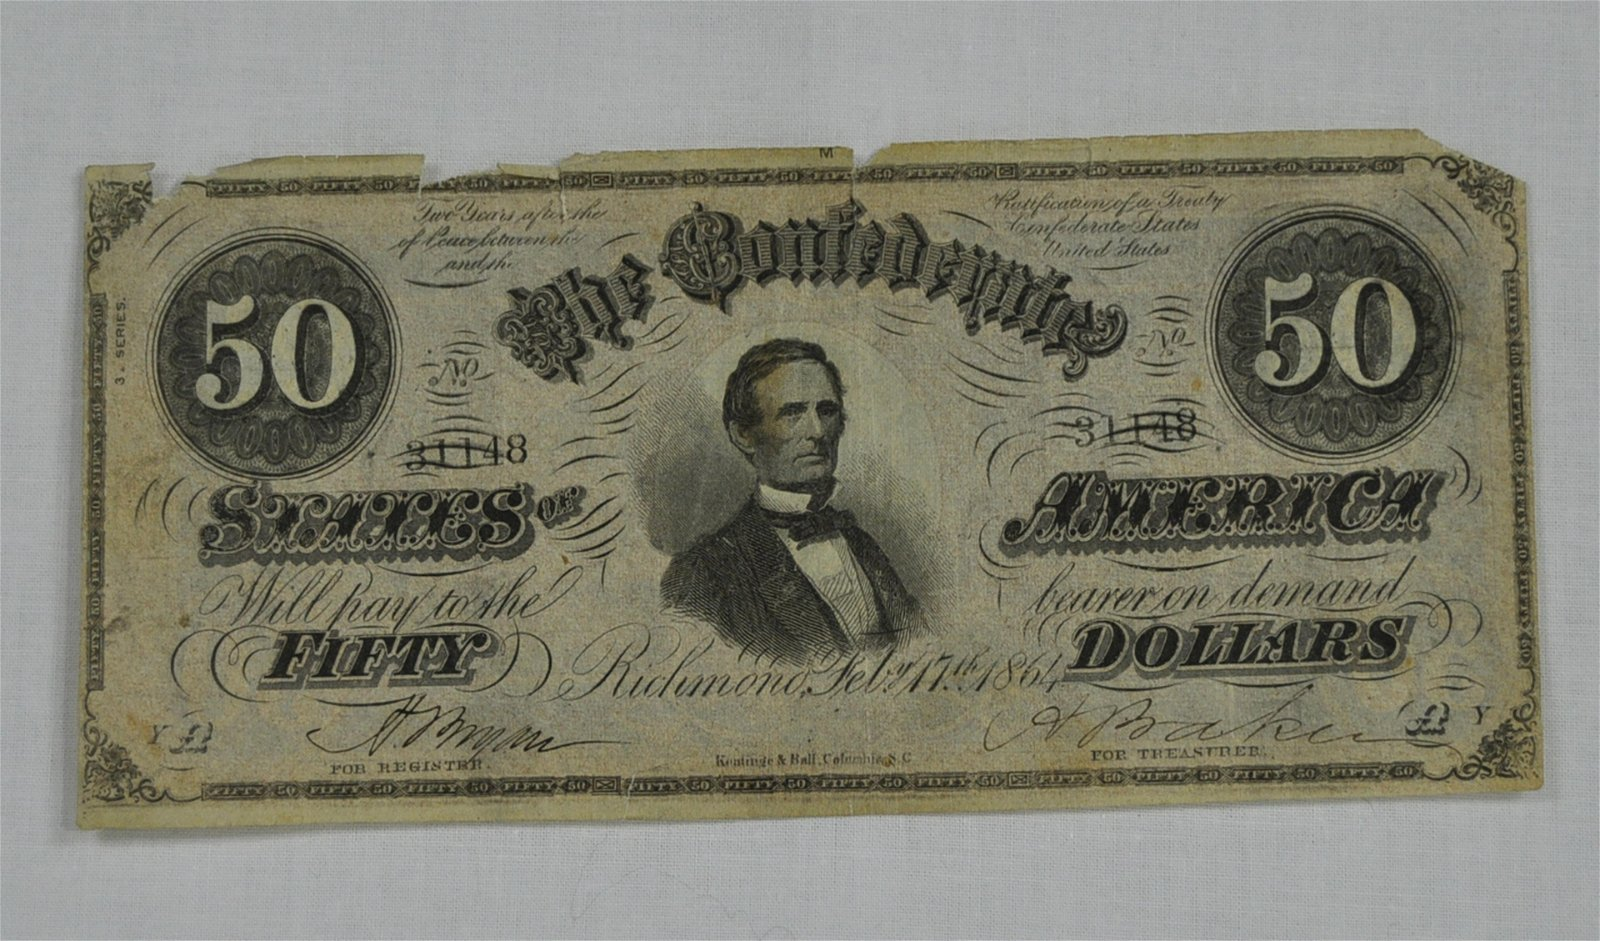 C.S.A. 1864 Fifty Dollar Note